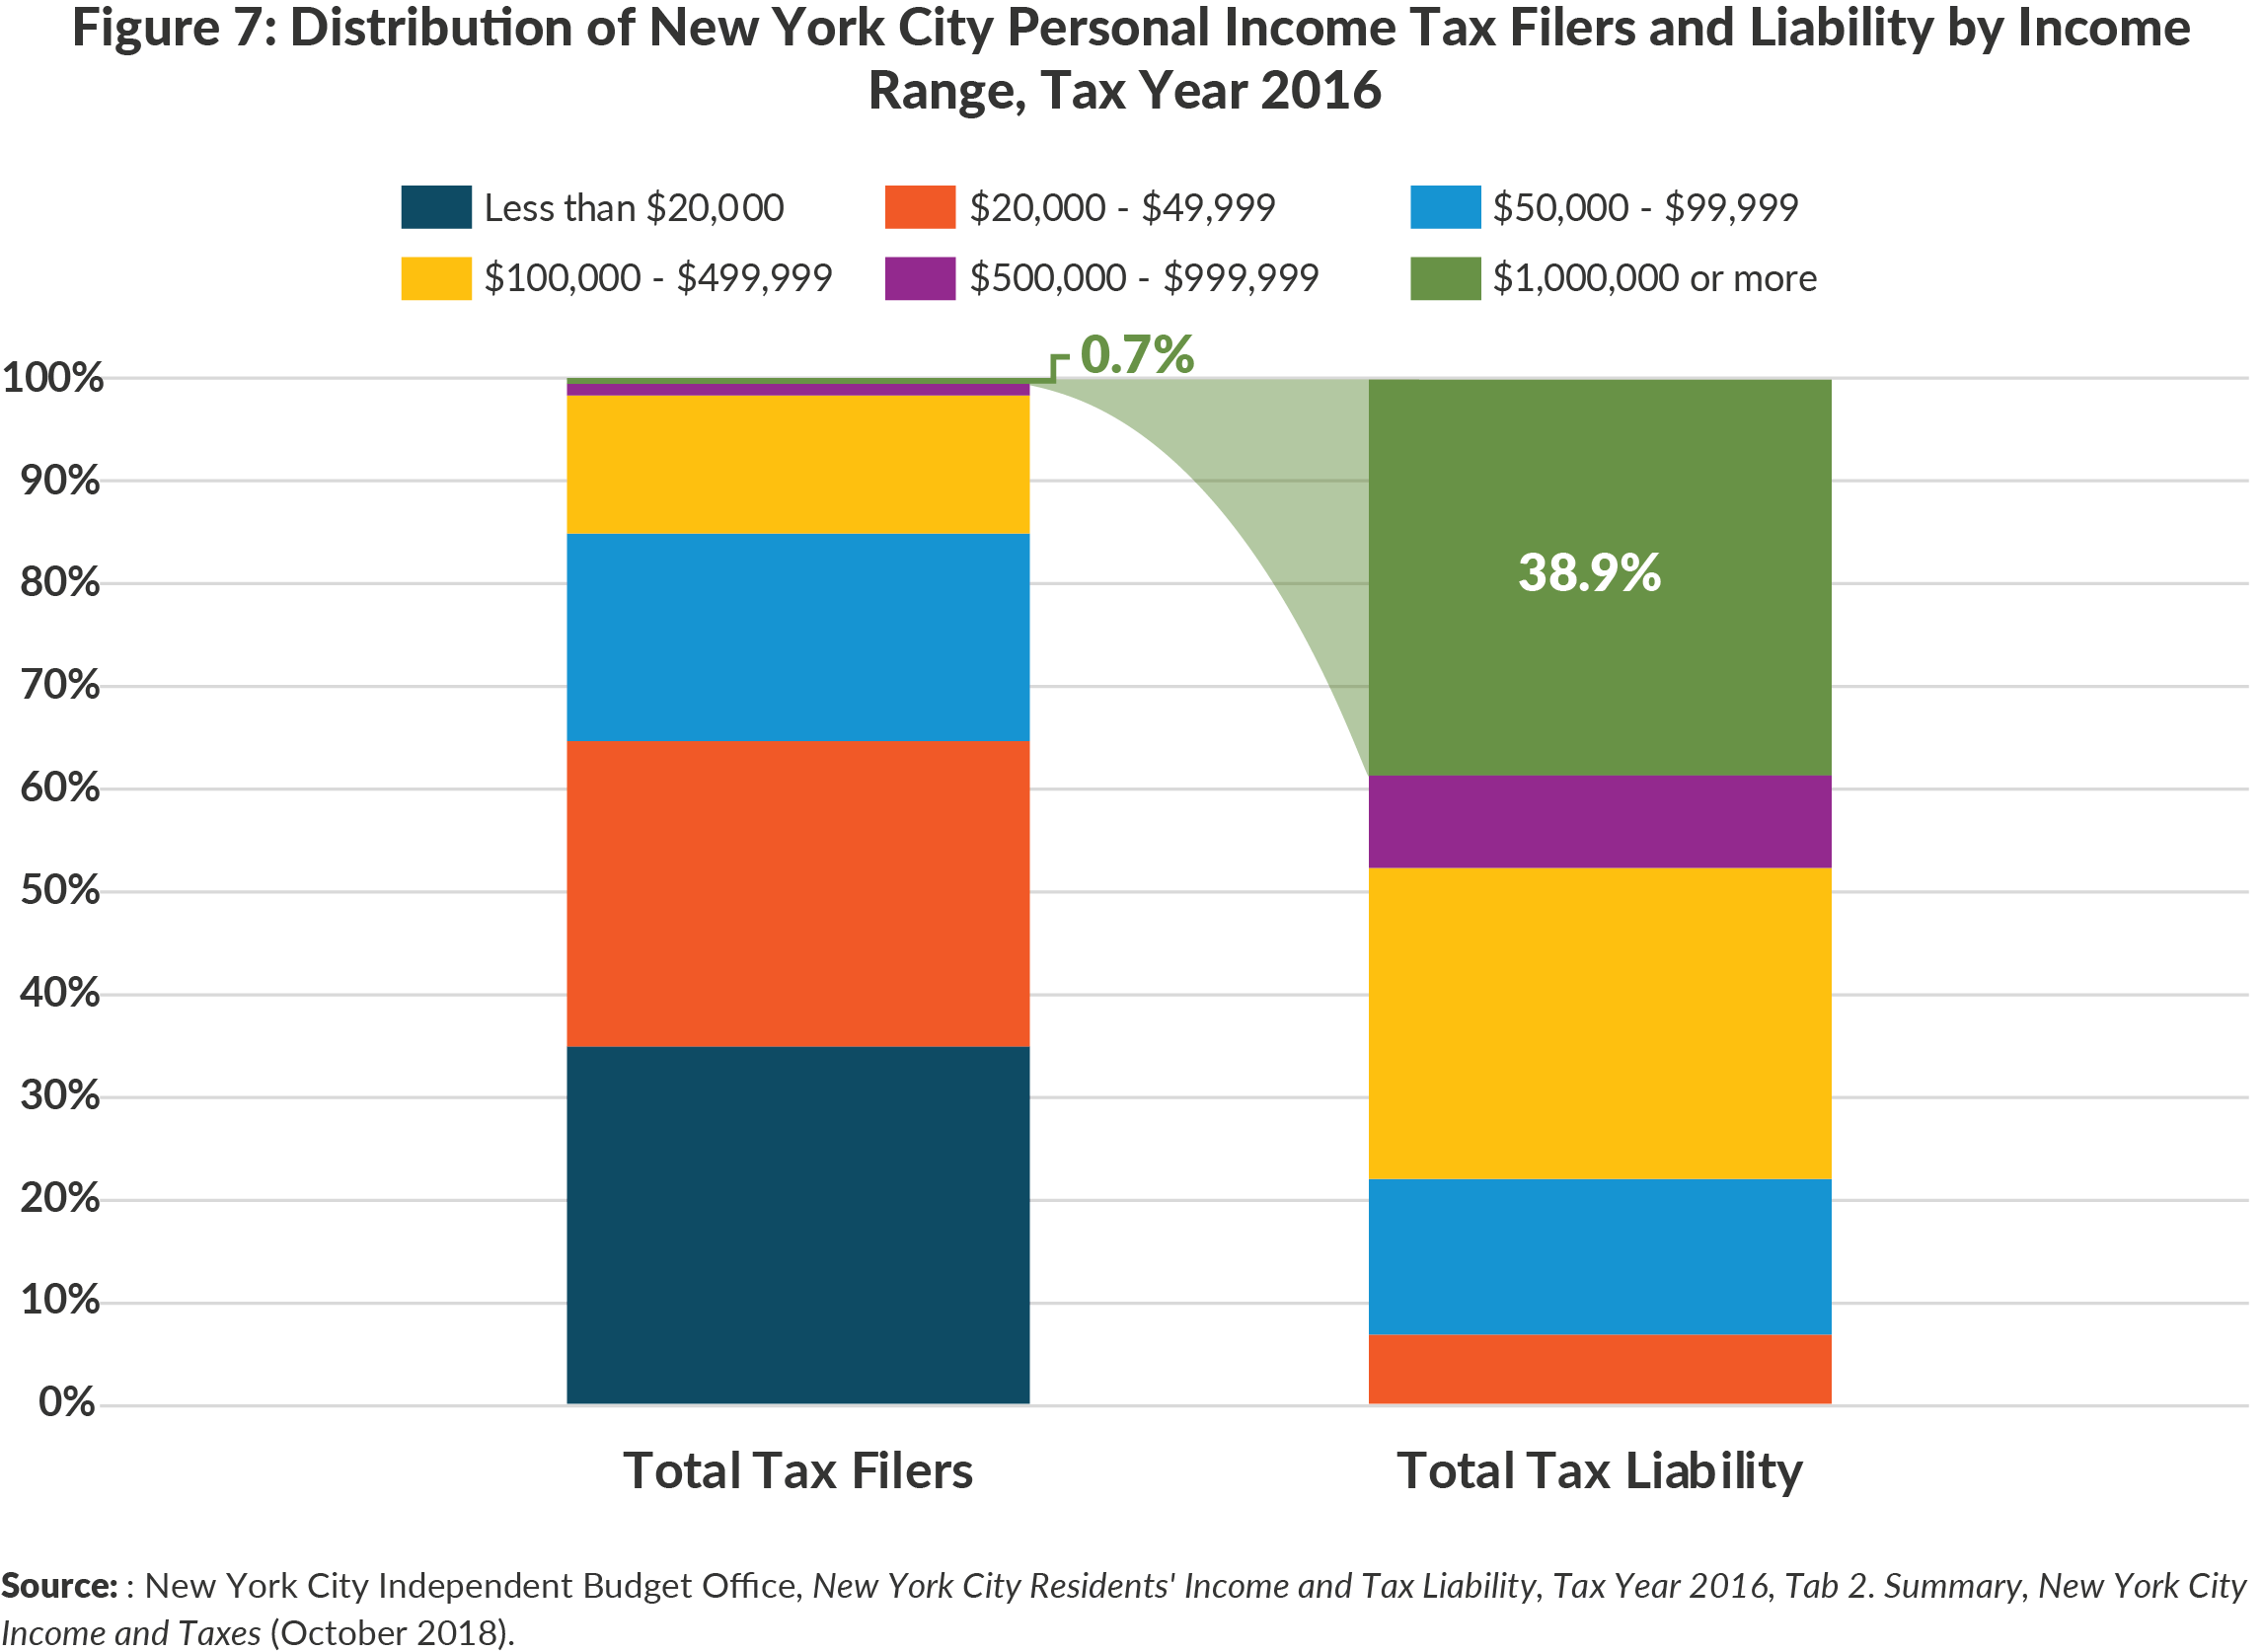 Figure 7: Distribution of New York City Personal Income Tax Filers and Liability by IncomeRange, Tax Year 2016